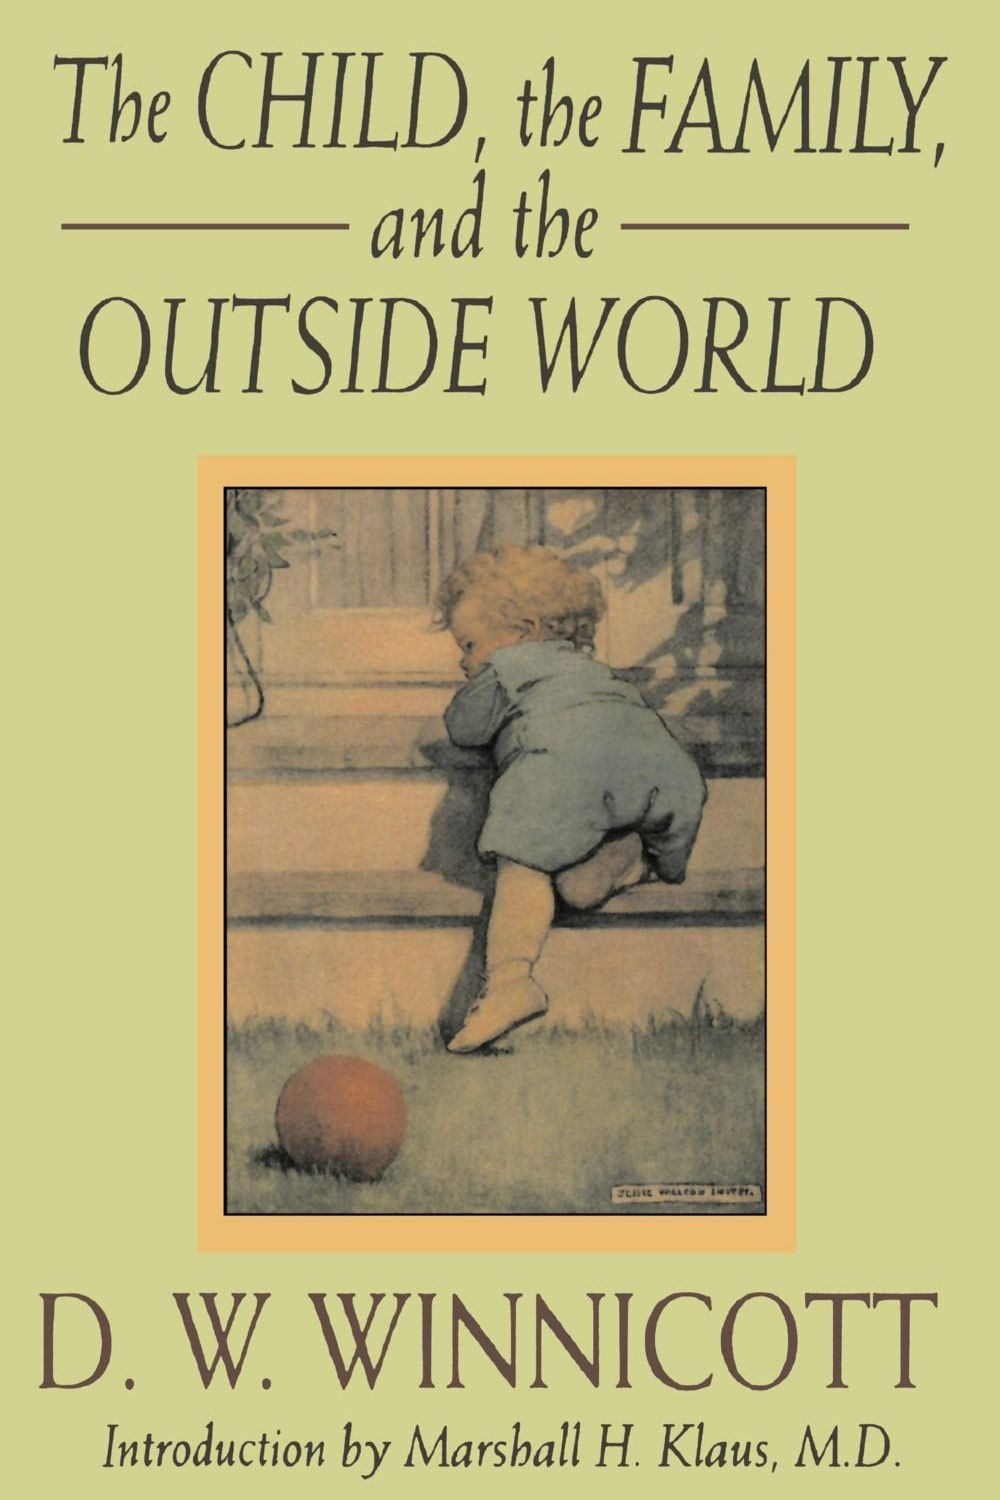 The Child Family And Outside World By DW Winnicott